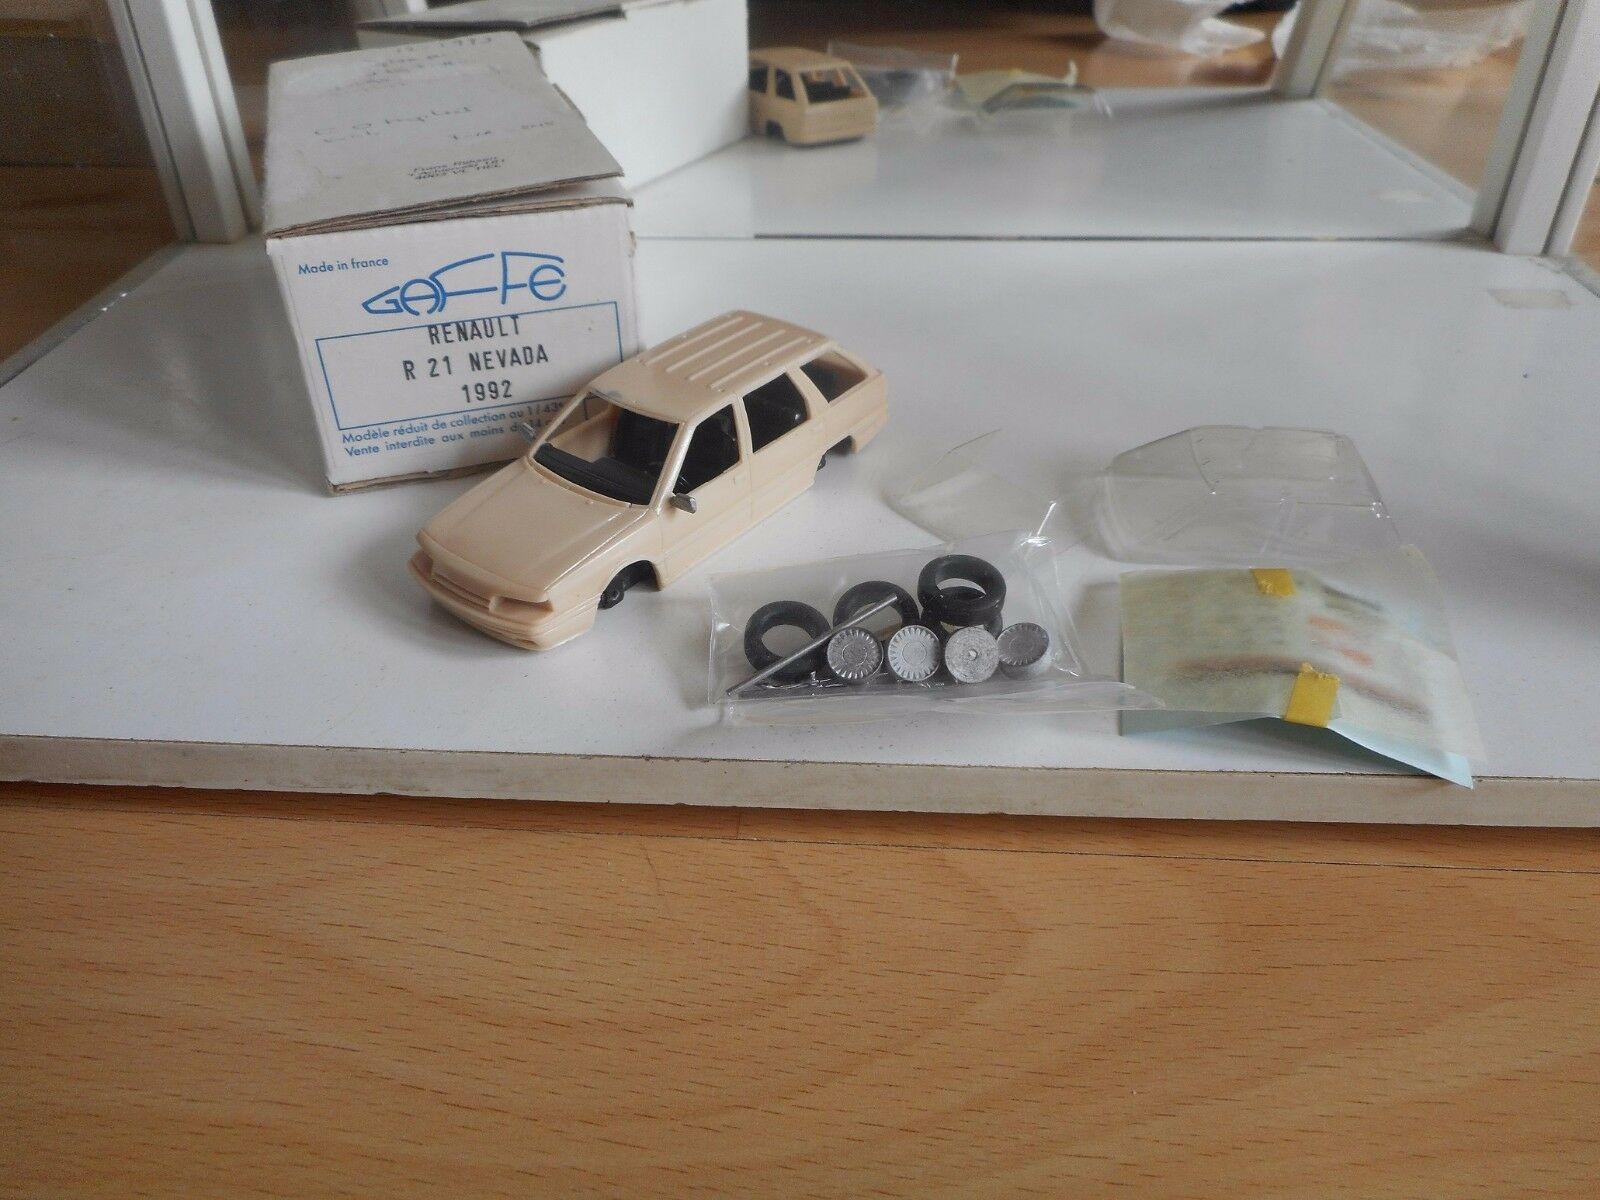 Model Resin Kit Gaffe Renault 21 Nevada '92 on 1 43 in Box